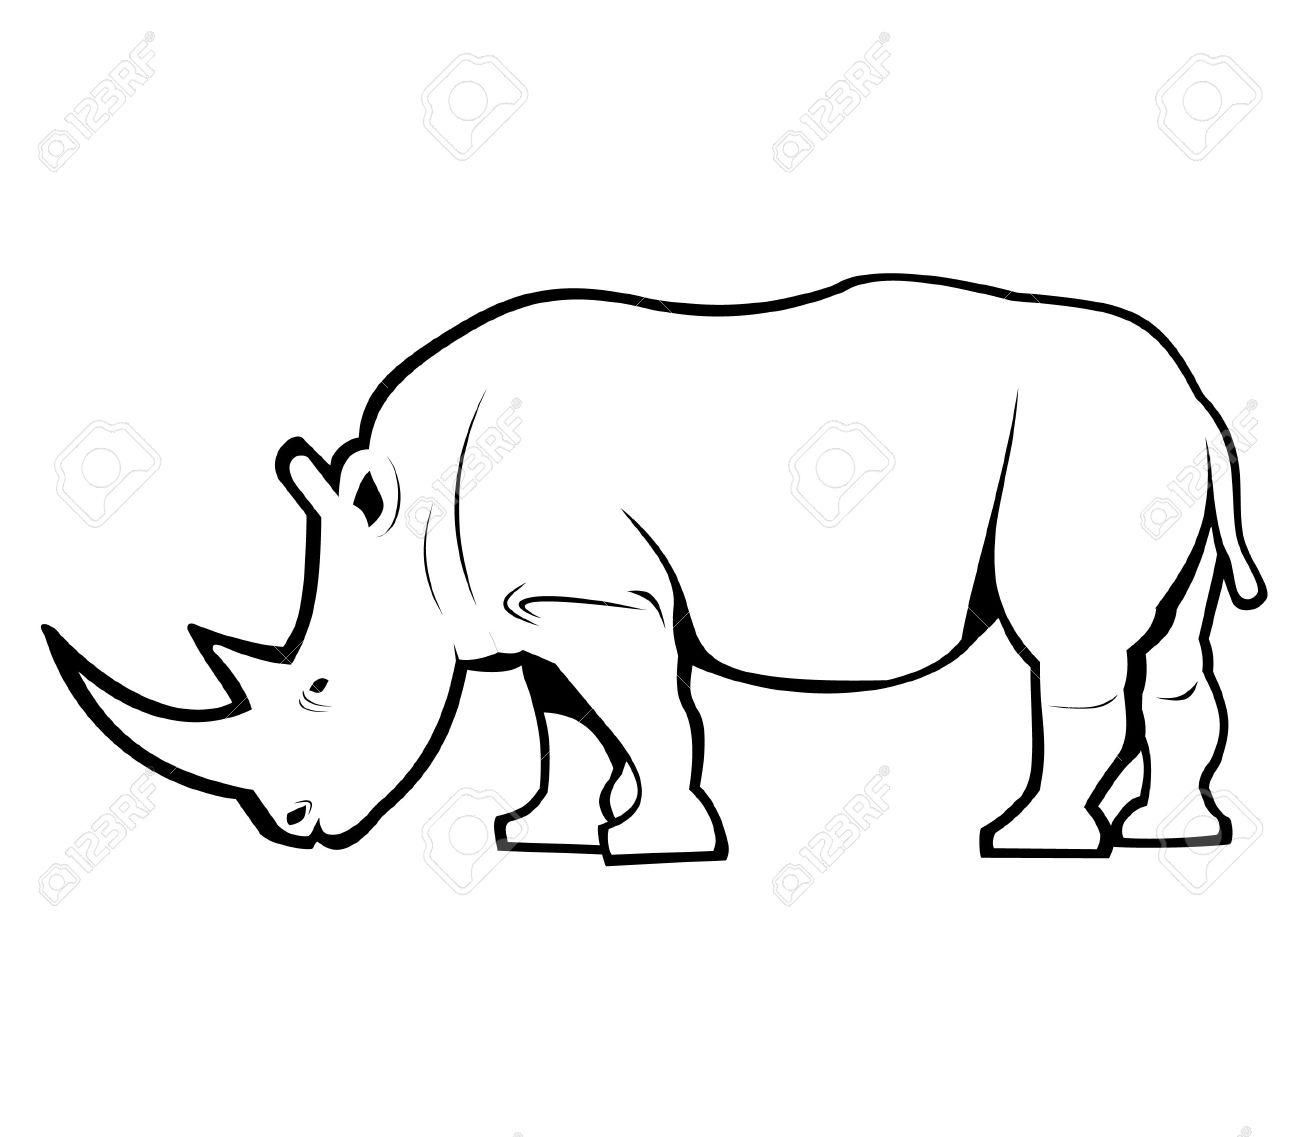 Rhino Outline Royalty Free Cliparts, Vectors, And Stock.